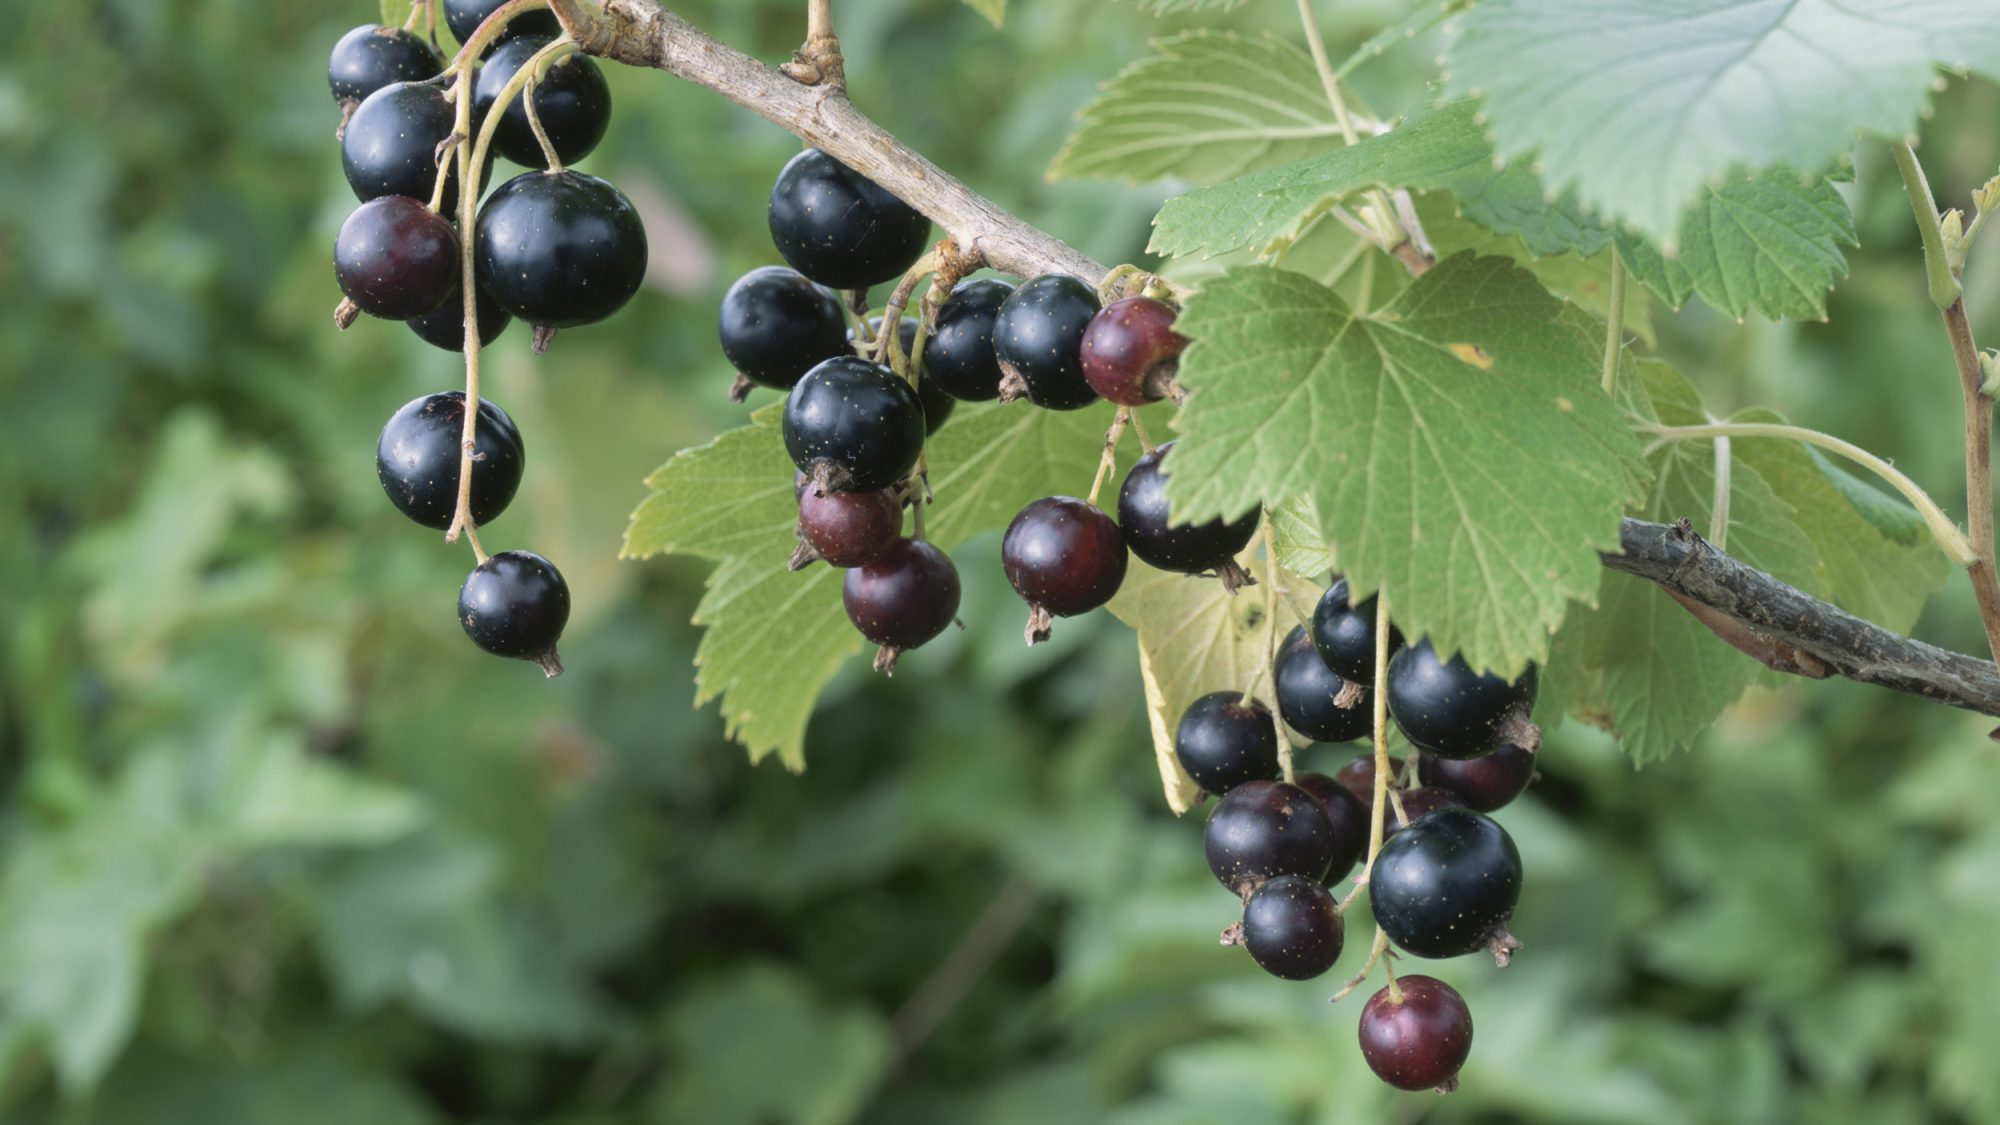 Blackcurrants available in U.S.